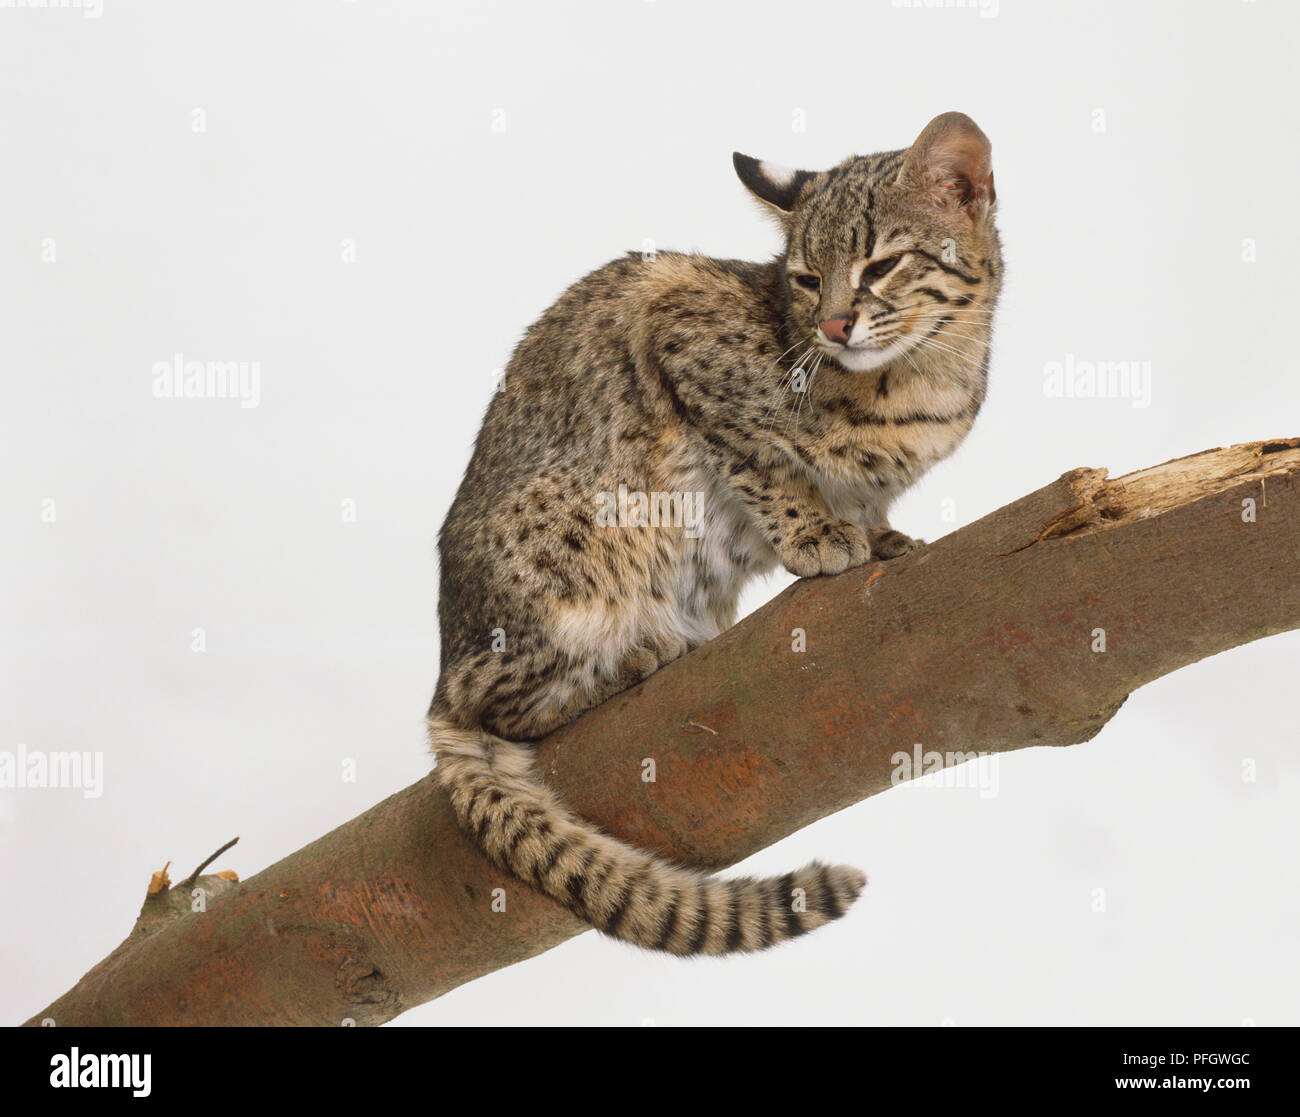 Felis geoffroyi (Geoffroy's cat). Family Felidae. A tiny wild cat crouched on a tree branch. Spotted ochre and grey coat. - Stock Image